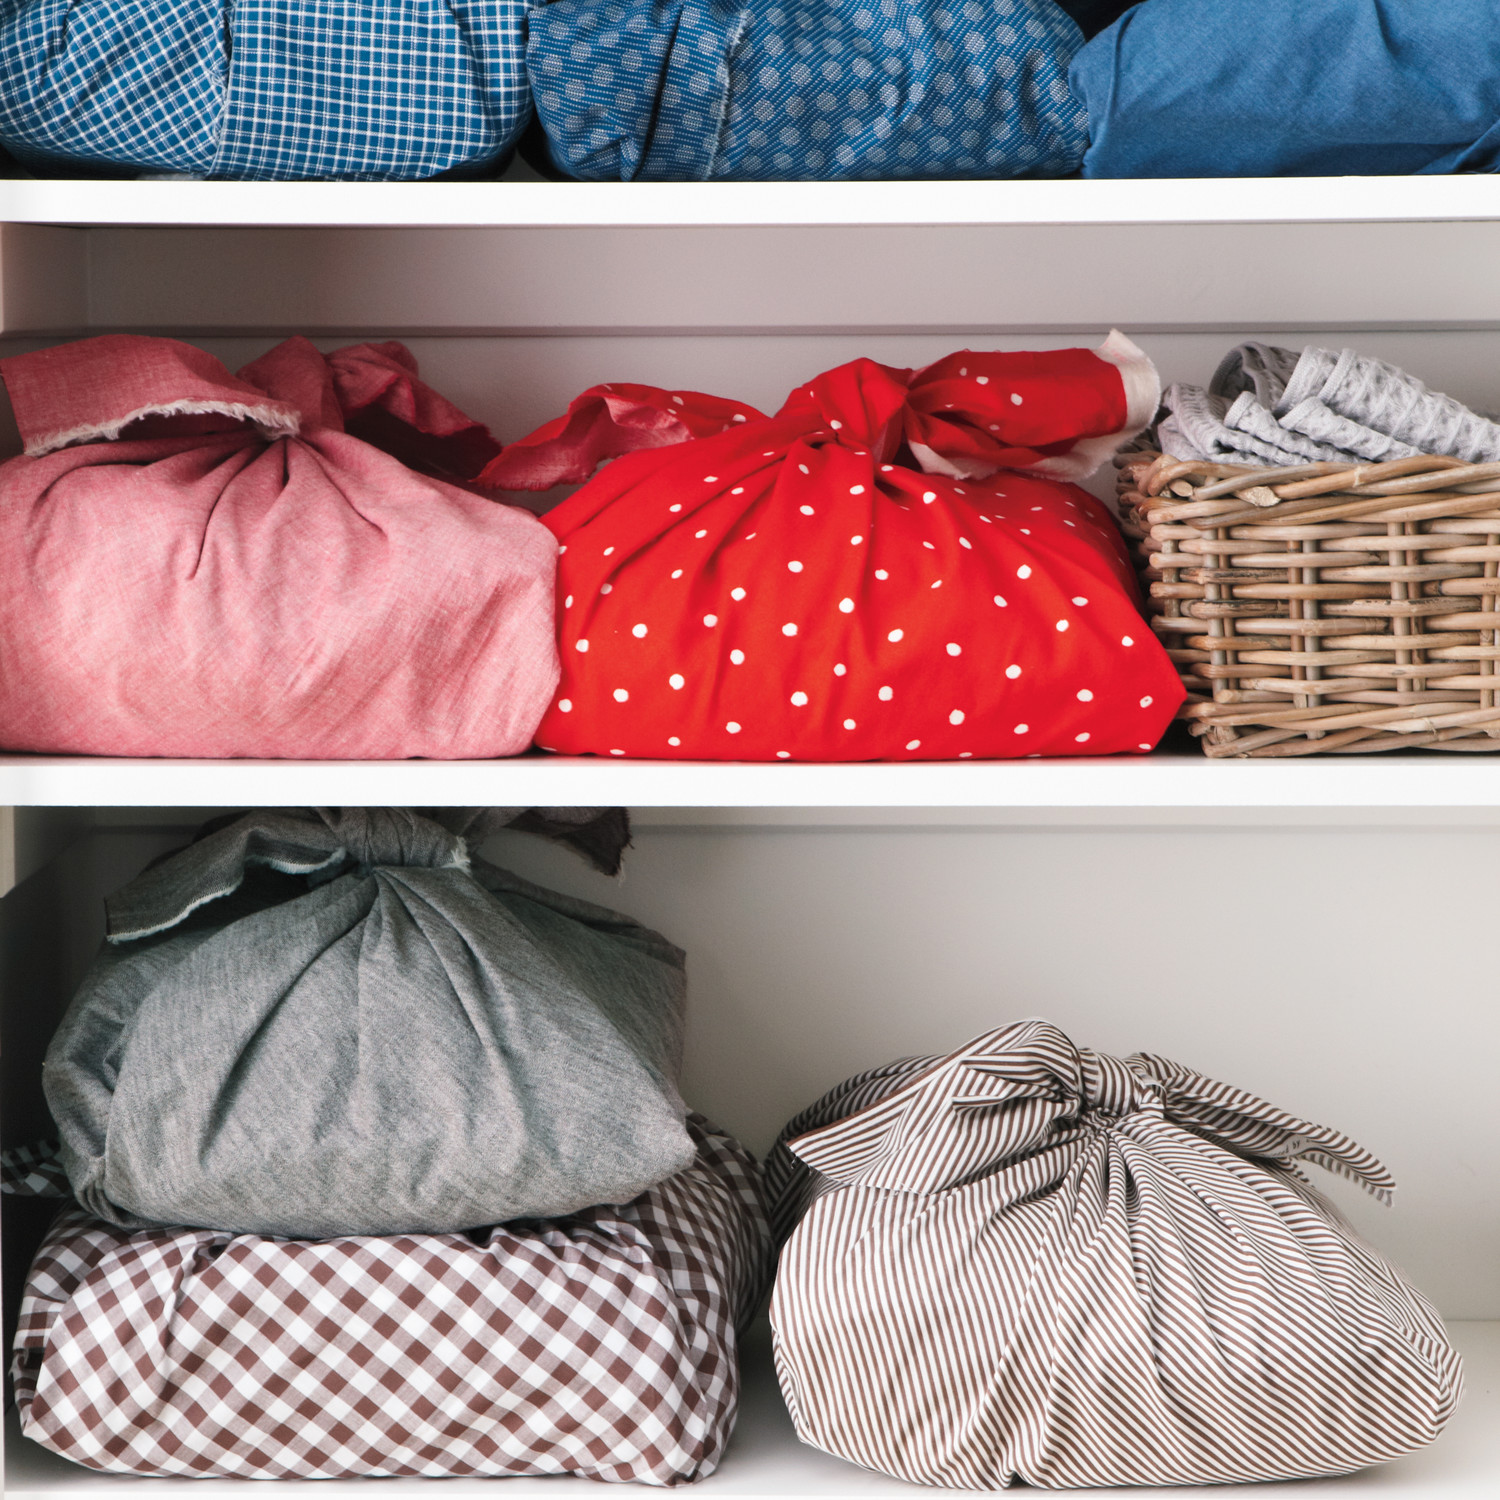 Organization Tricks 15 Steps To The Bedroom Of Your